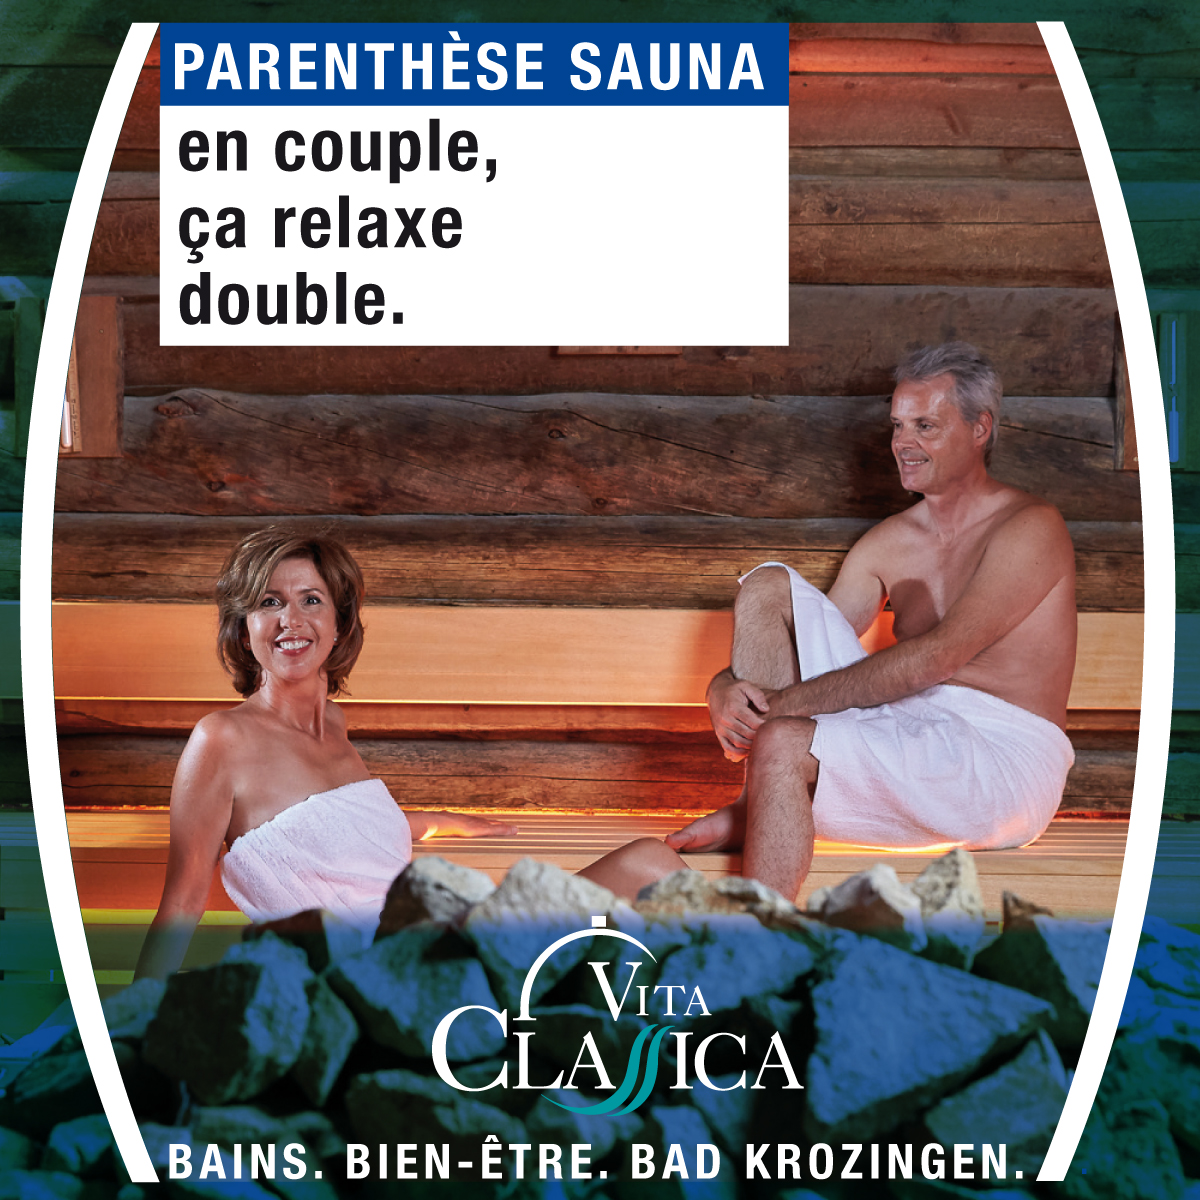 [:fr-fr]couple_sauna_1200x1200_03_01_2019[:]